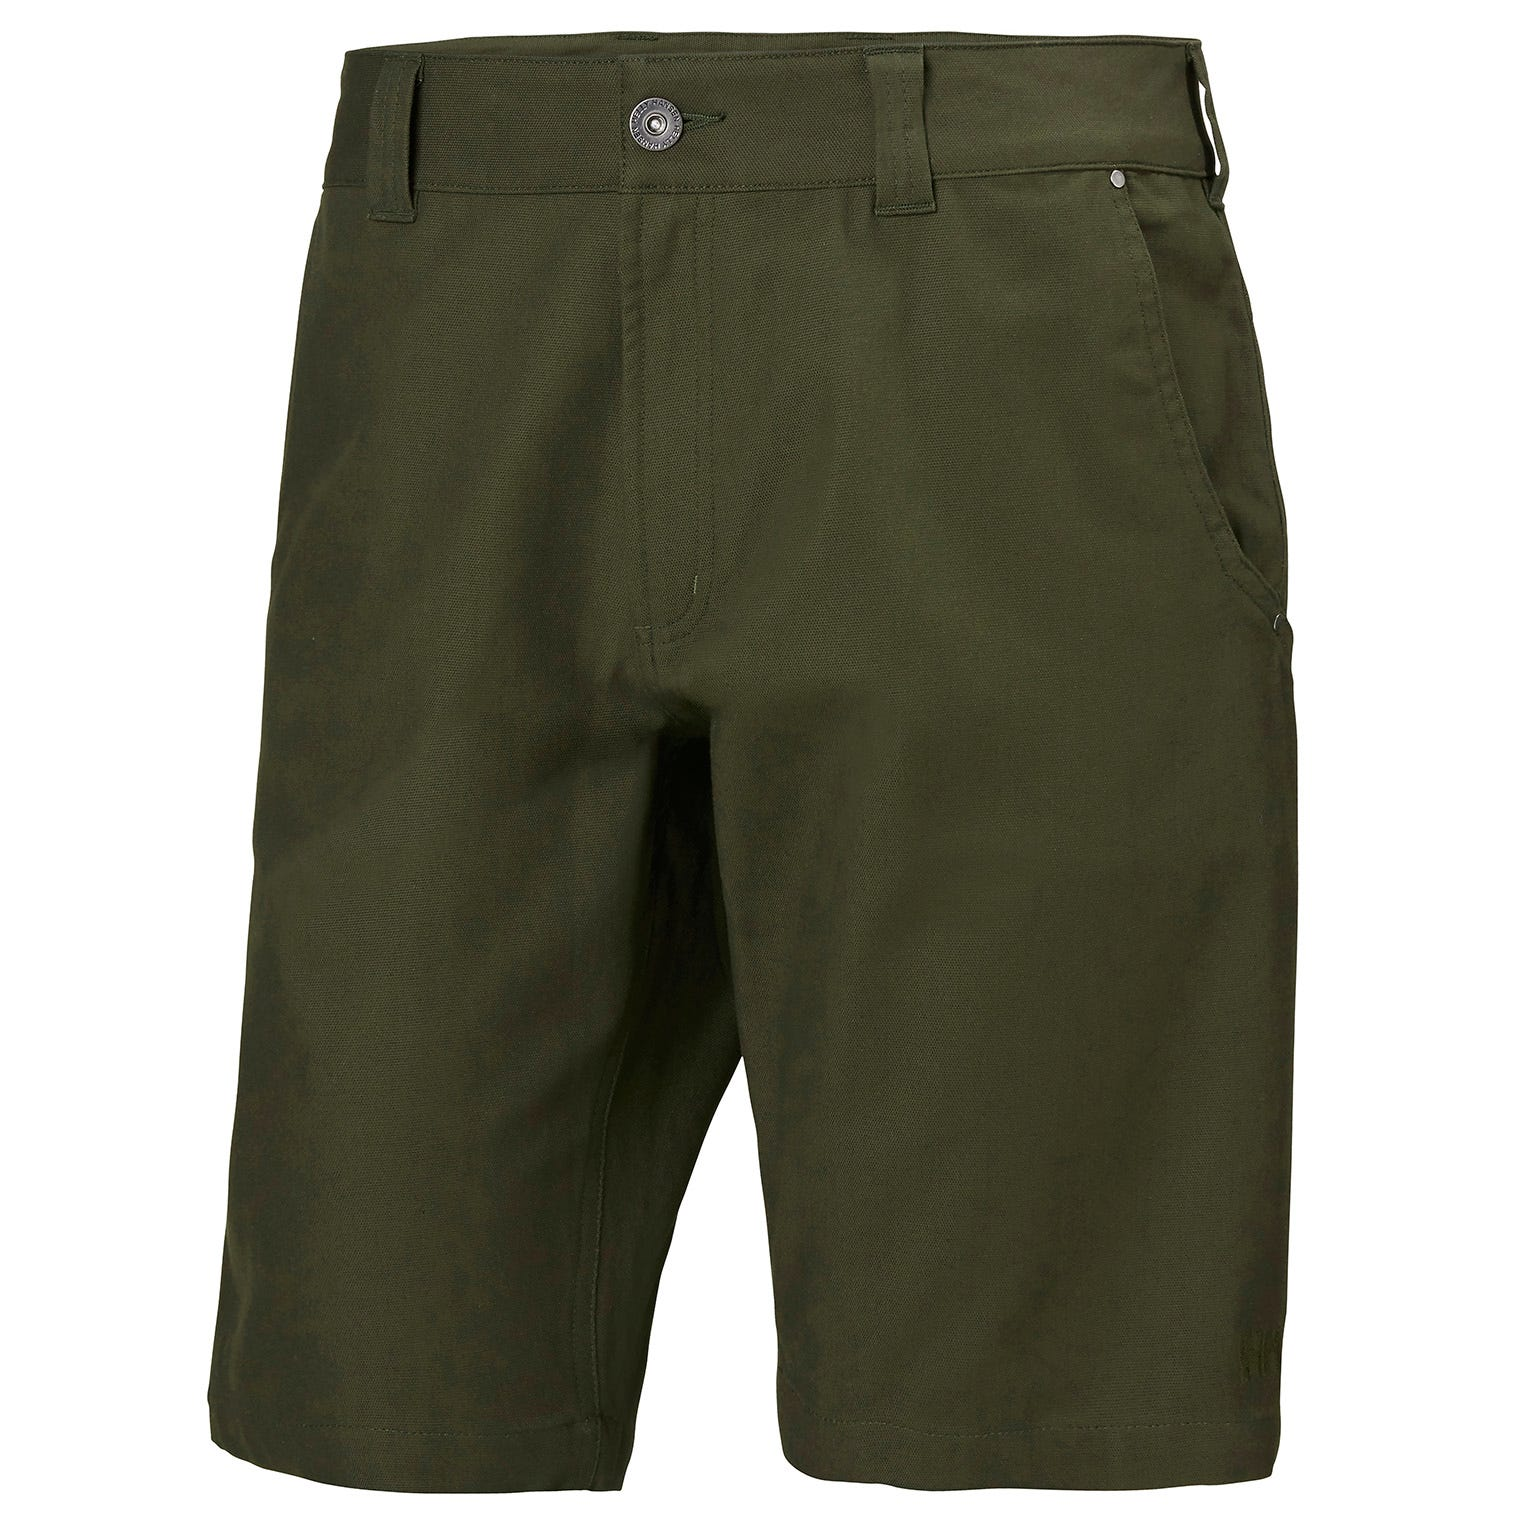 Helly Hansen Mens Essential Canvas Shorts Hiking Trouser Green M